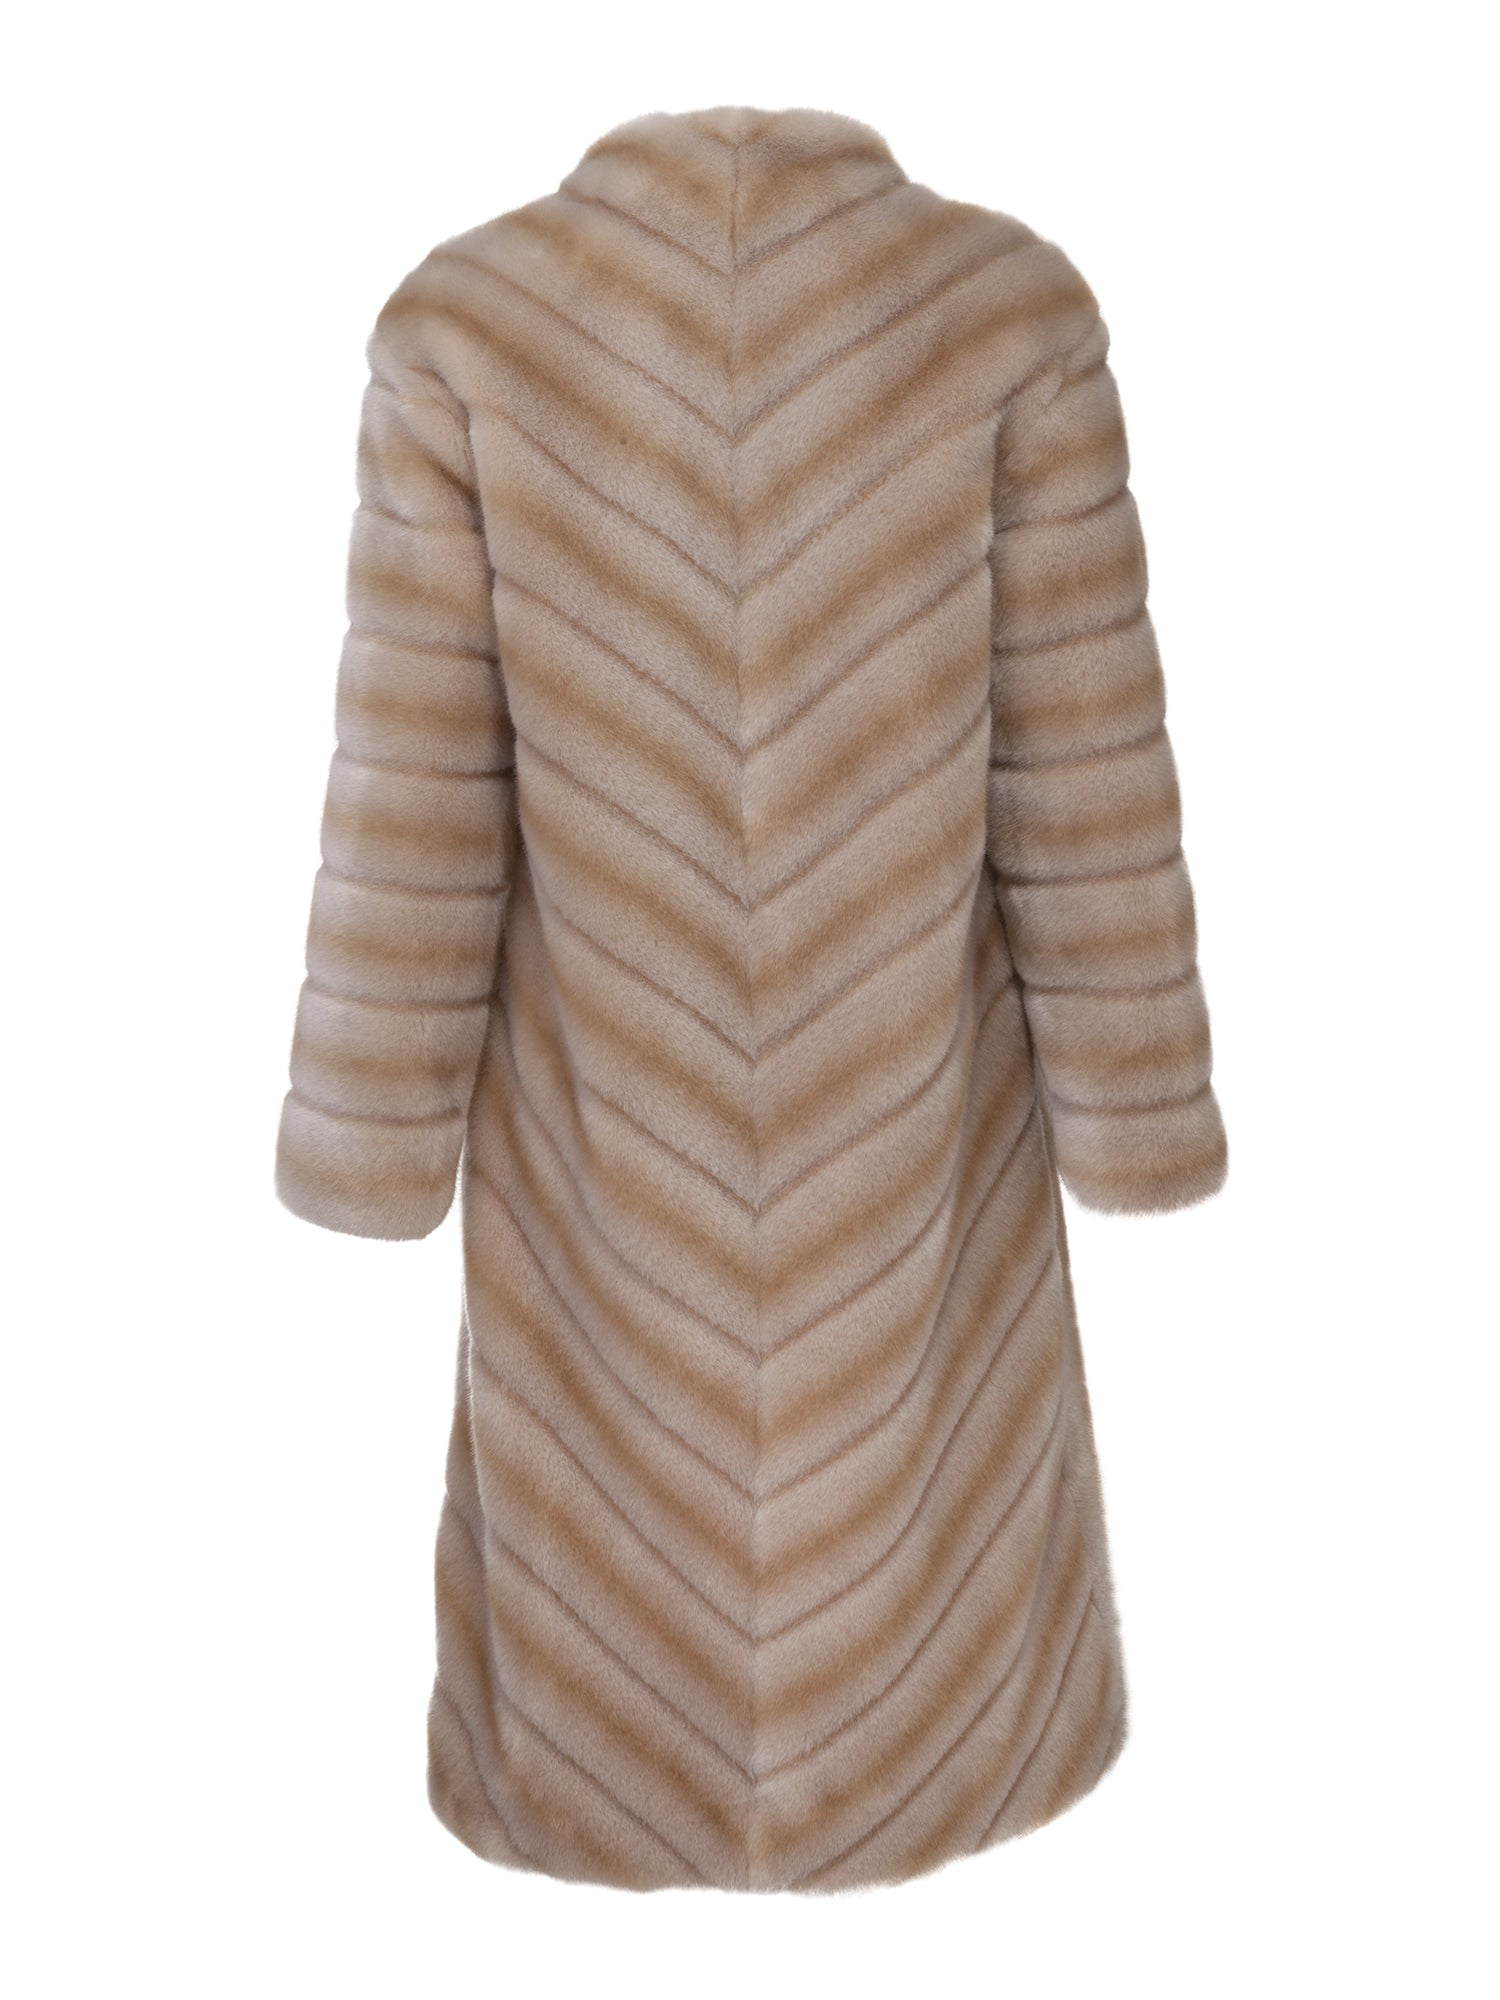 Marei1998's Timeless Echinacea Long Faux Fur Coat In The Classiest Natural/Beige Color. Featuring Calf Length, Oversized Silhouette And Wide Shawl Neckline. Investment Piece / Winter Essential. As Worn By The Model. Back View. Resort 2020 Collection - Furless Friendship.